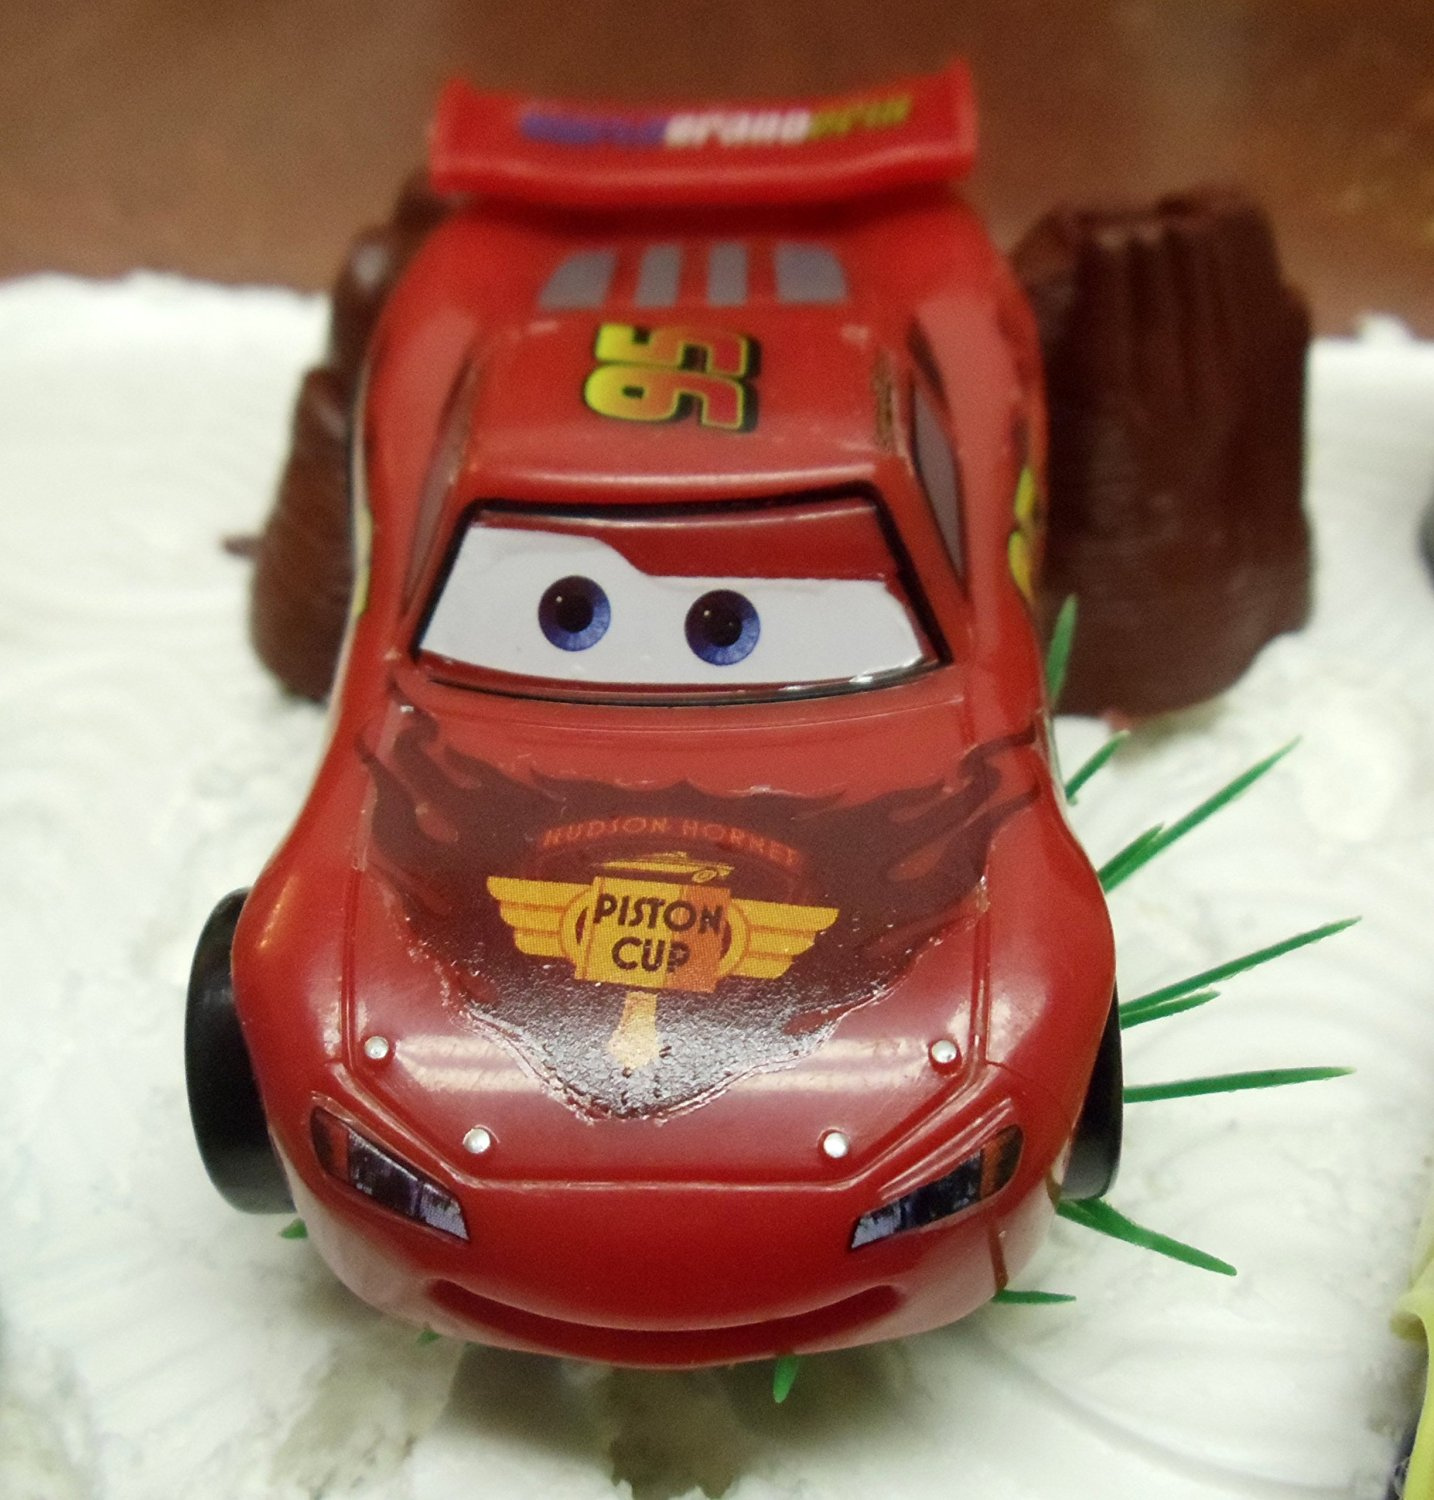 Enjoyable Cars 14 Piece Birthday Cake Topper Set Featuring Tow Mater Sarge Funny Birthday Cards Online Benoljebrpdamsfinfo